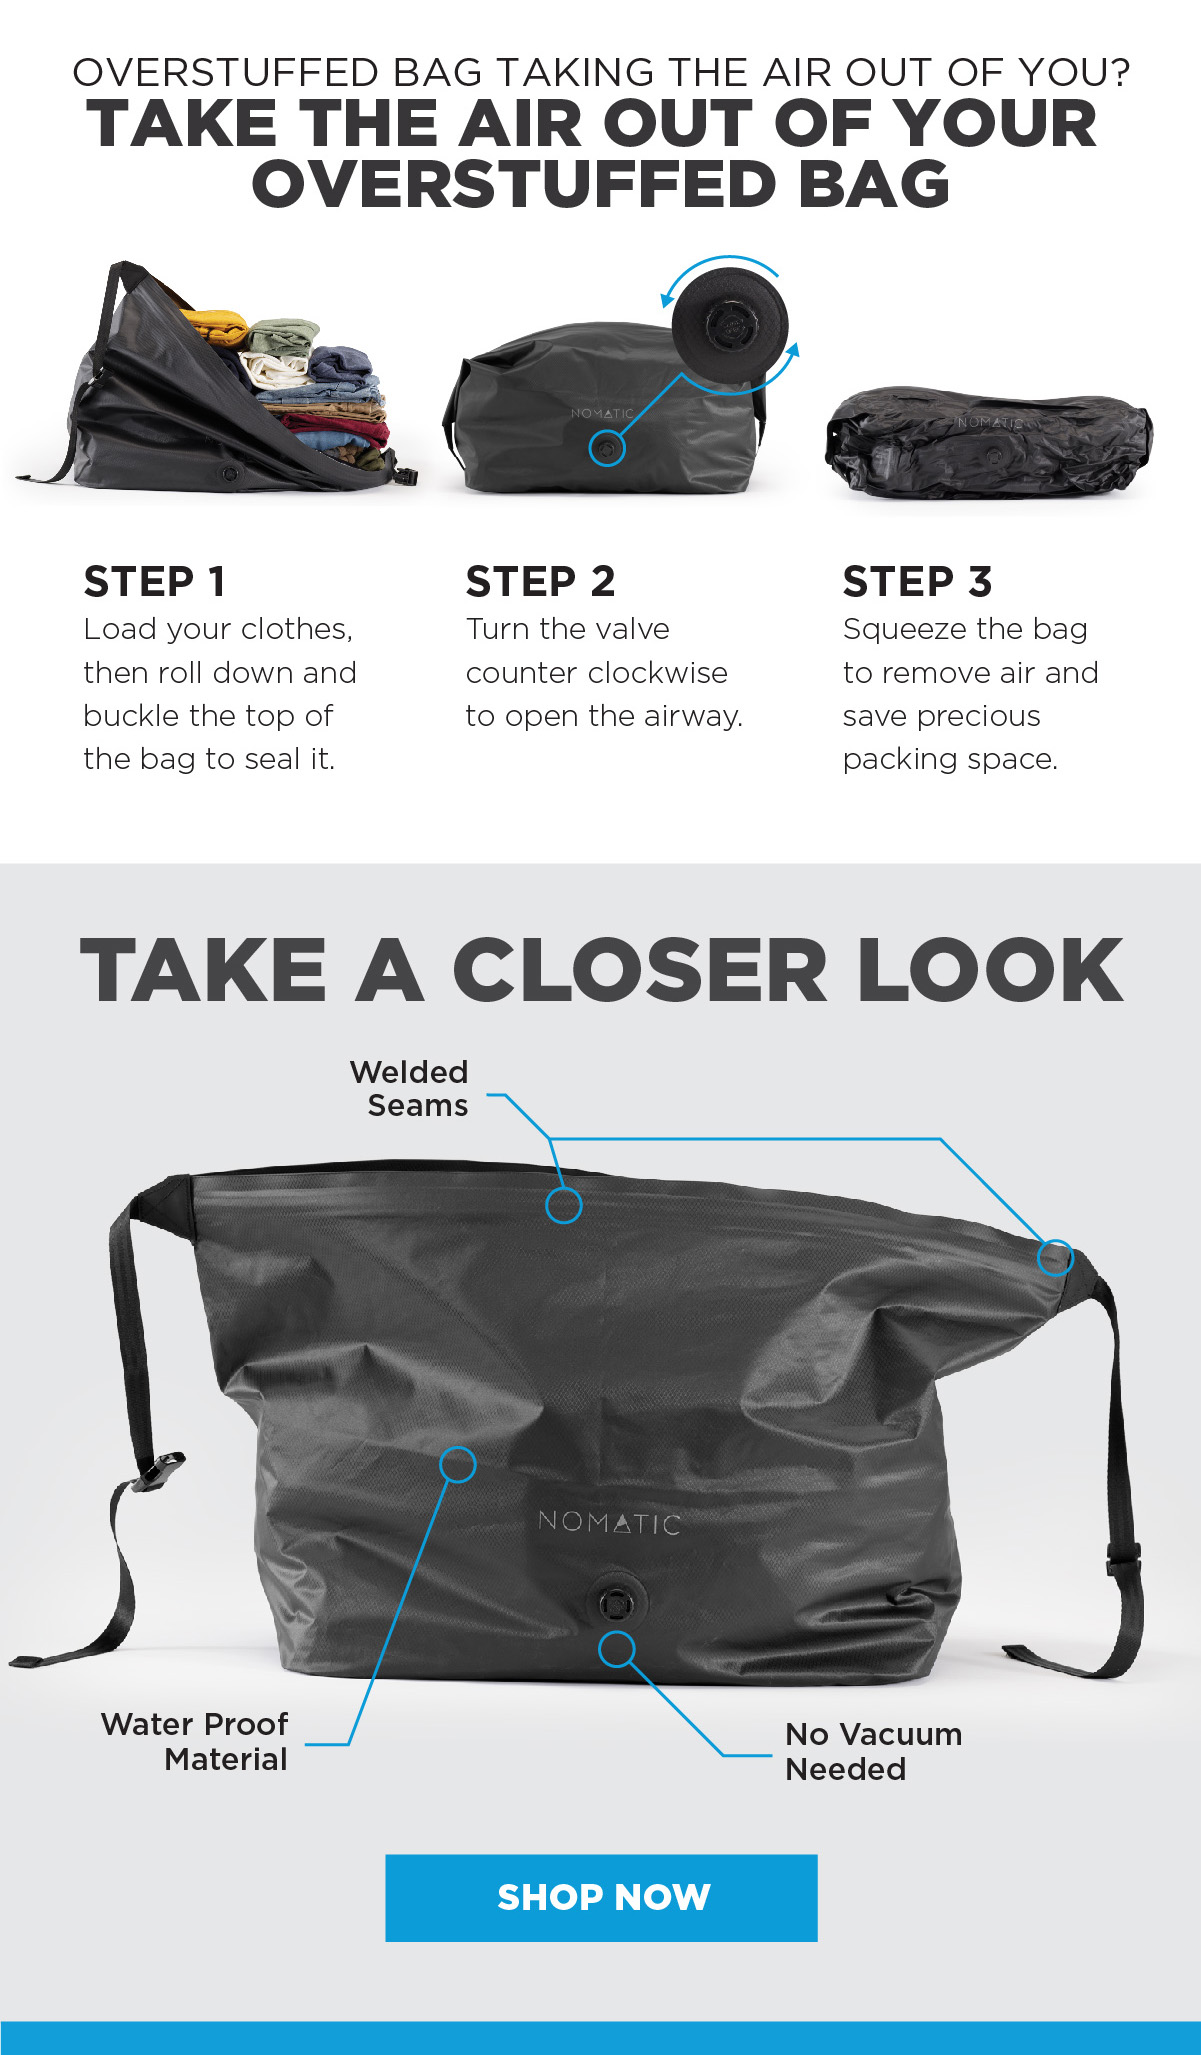 How to use the vacuum bag - SHOP NOW